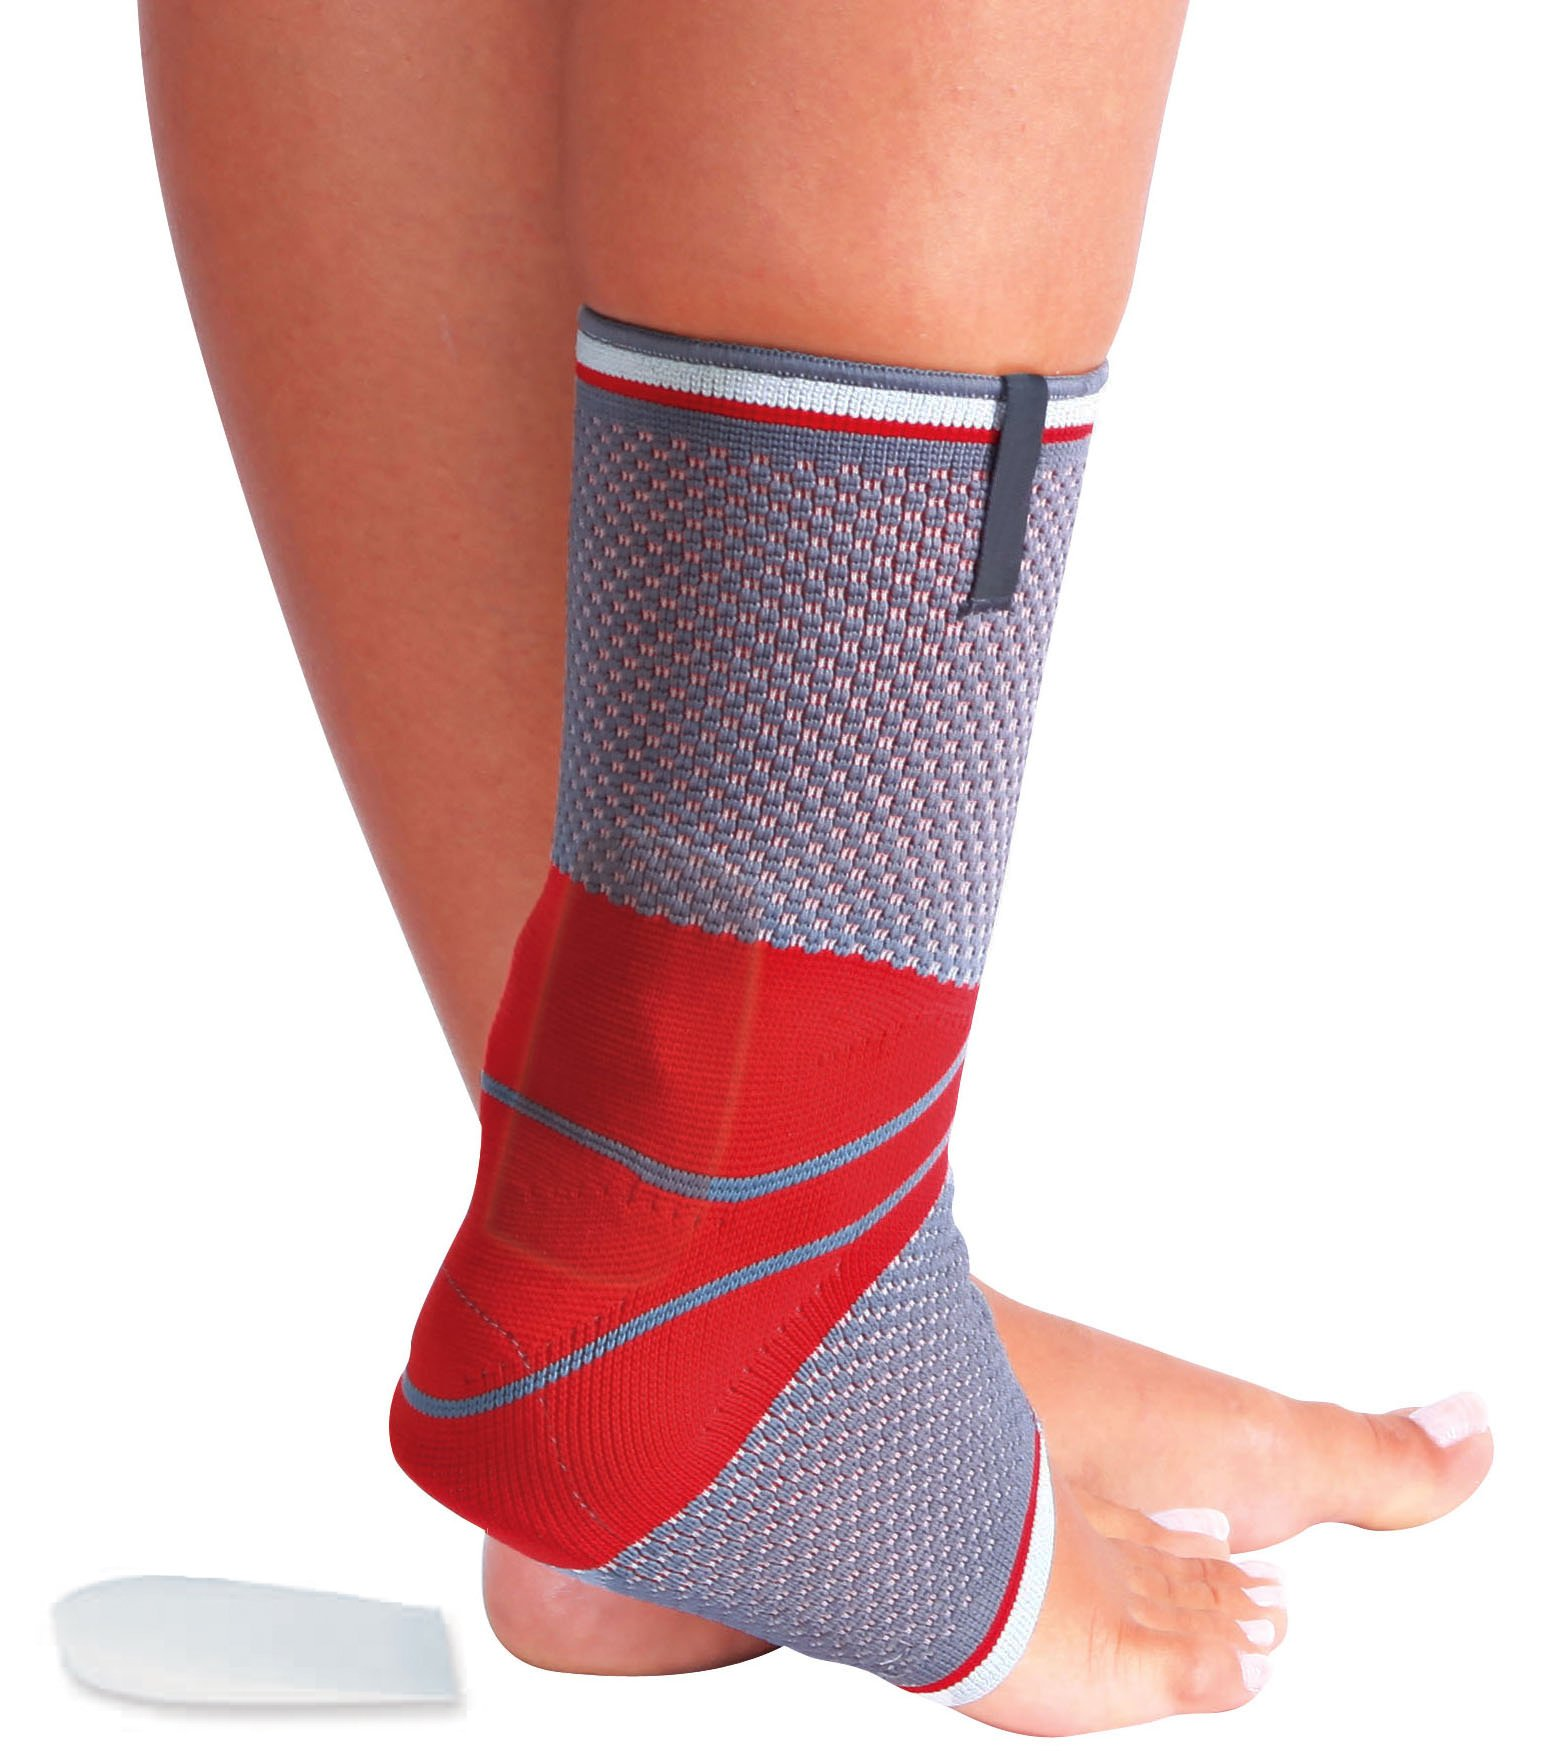 ORTONYX Achilles Tendon Support Ankle Brace Compression Sleeve - L Gray/Red